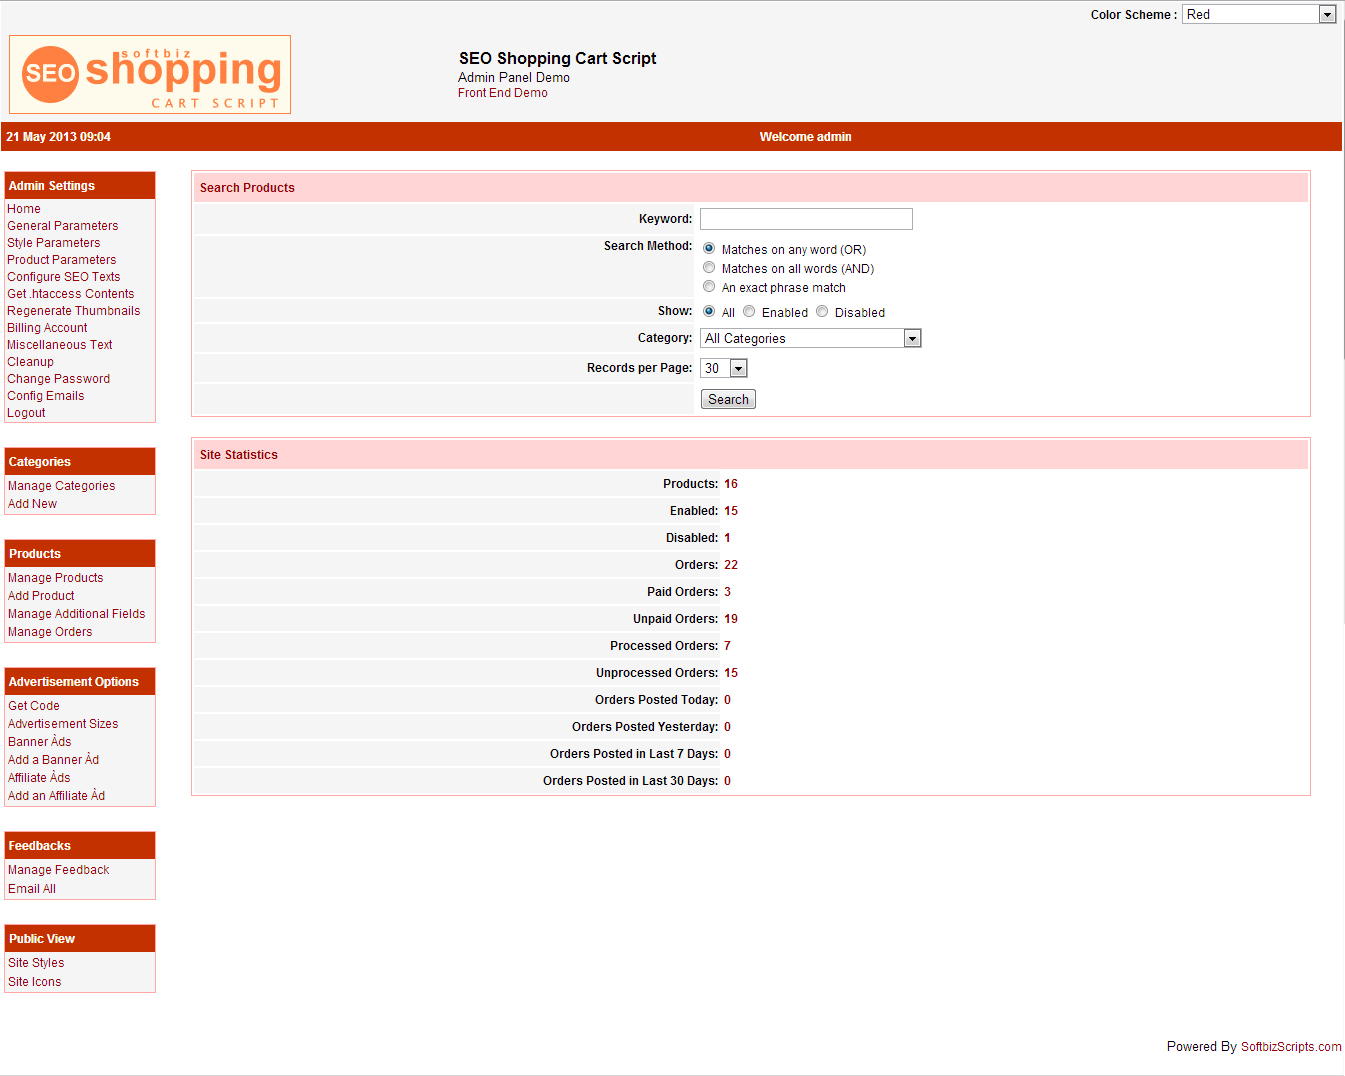 SEO Shopping Cart Script, Website Builder Software Screenshot